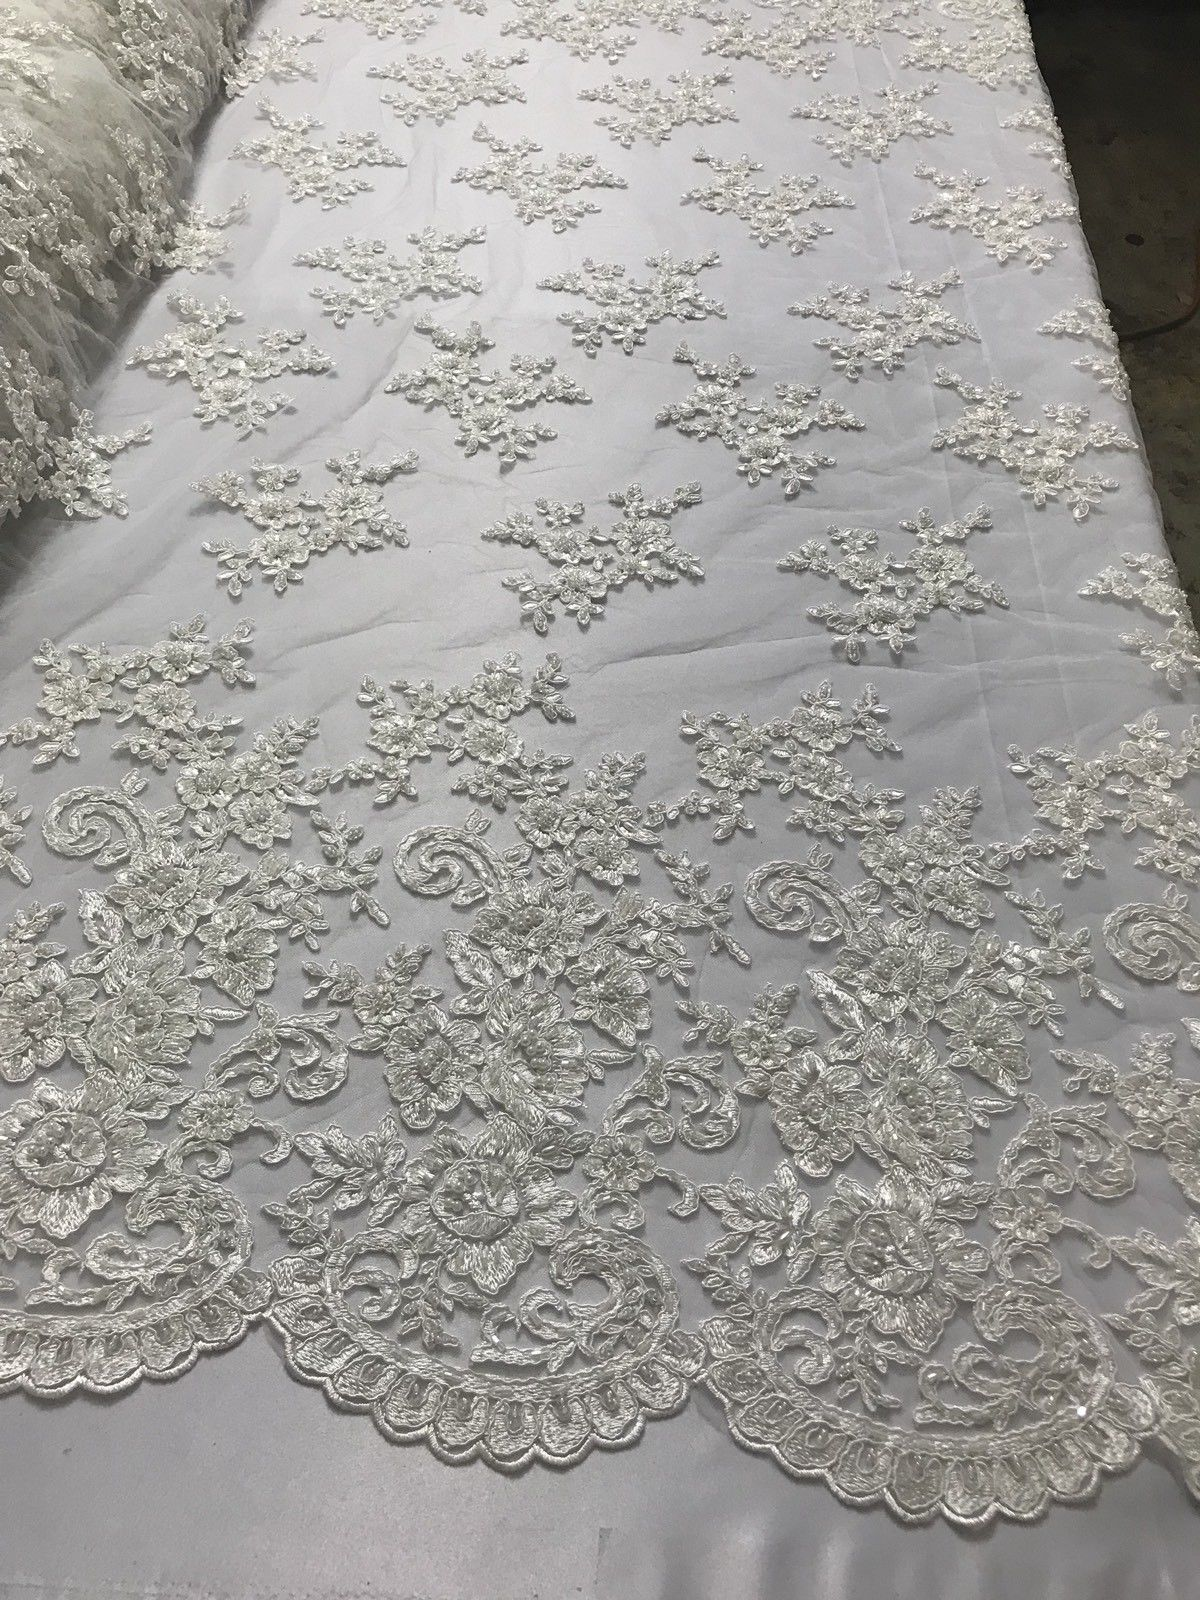 IVORY ROSE FASHION FLORAL DESIGN EMBROIDER WITH SEQUINS AND BEADS ON A MESH-YARD - KINGDOM OF FABRICS